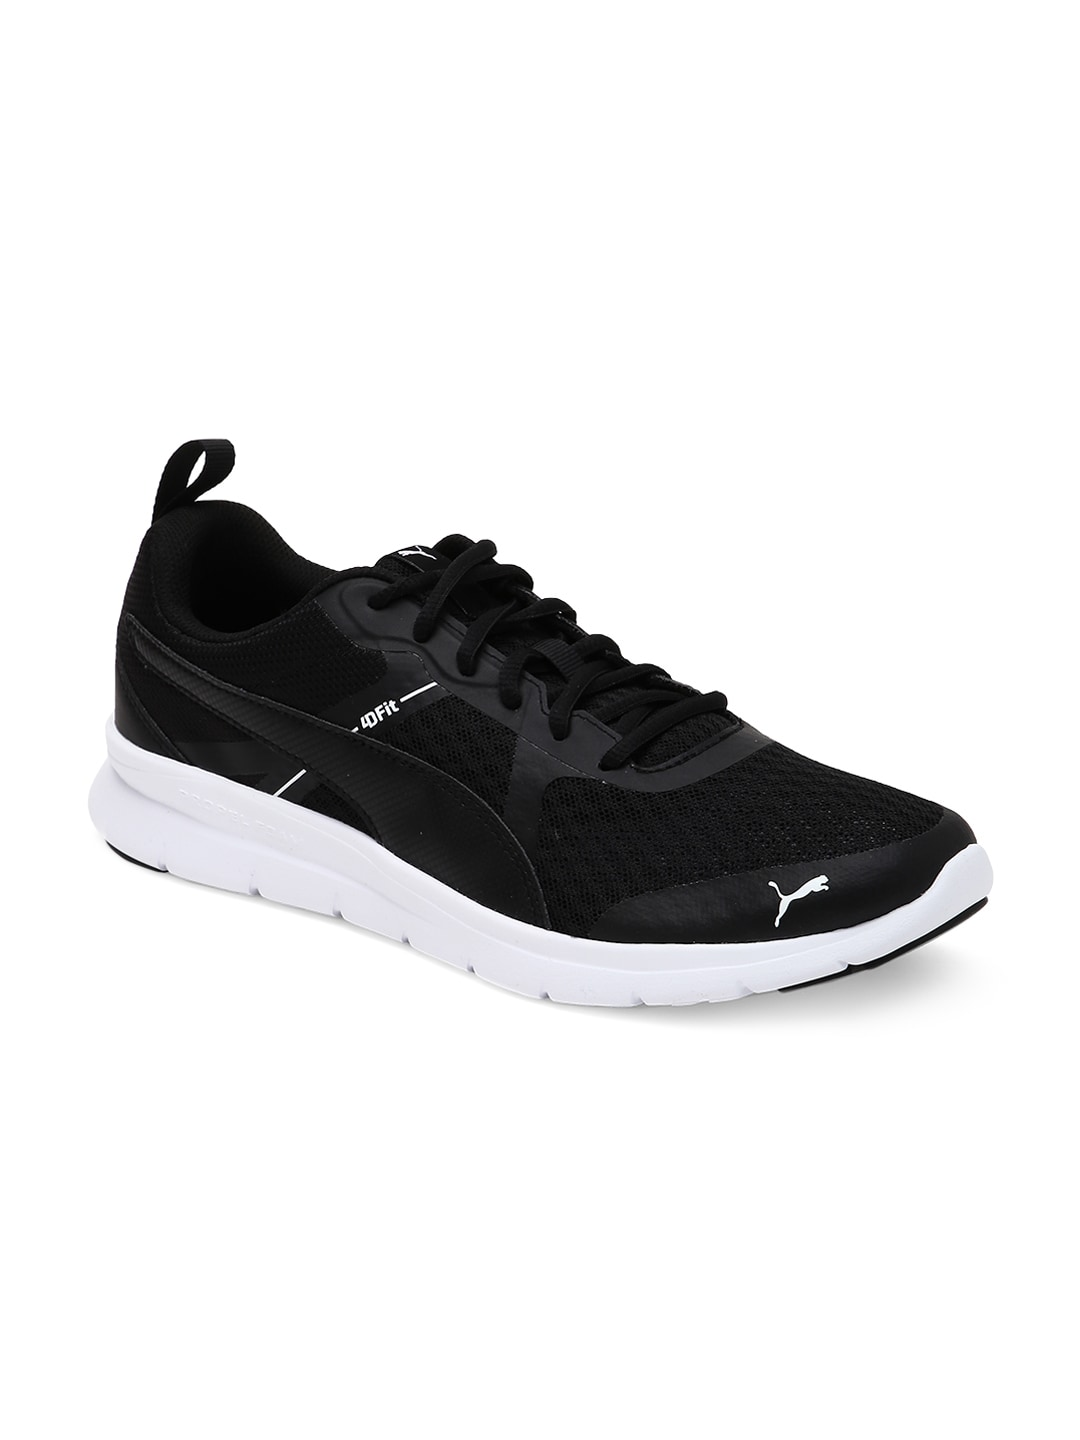 c148c56cc735 Puma Shoes - Buy Puma Shoes for Men   Women Online in India